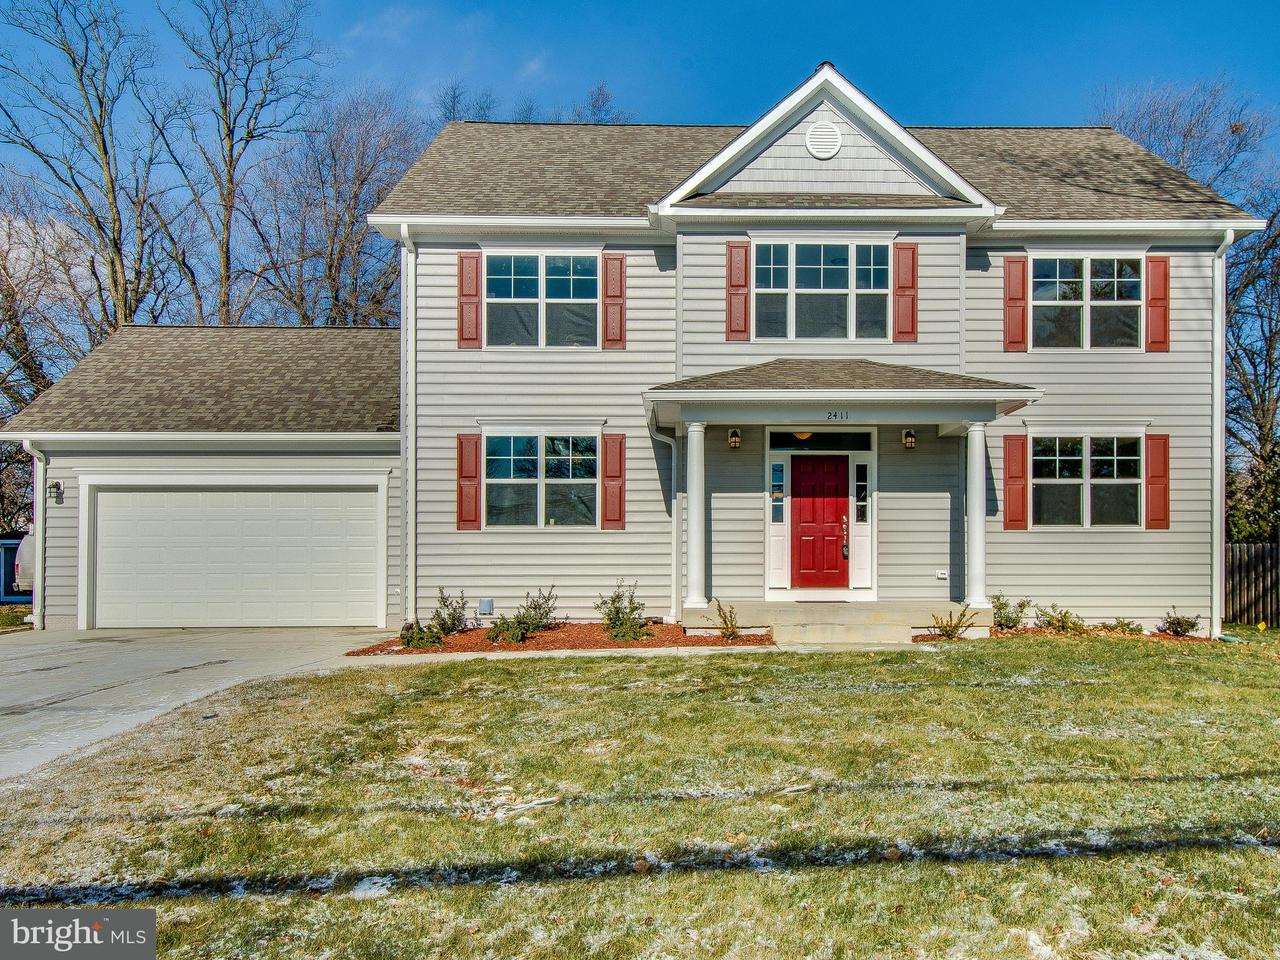 Single Family Home for Sale at 2411 Parker Avenue 2411 Parker Avenue Silver Spring, Maryland 20902 United States